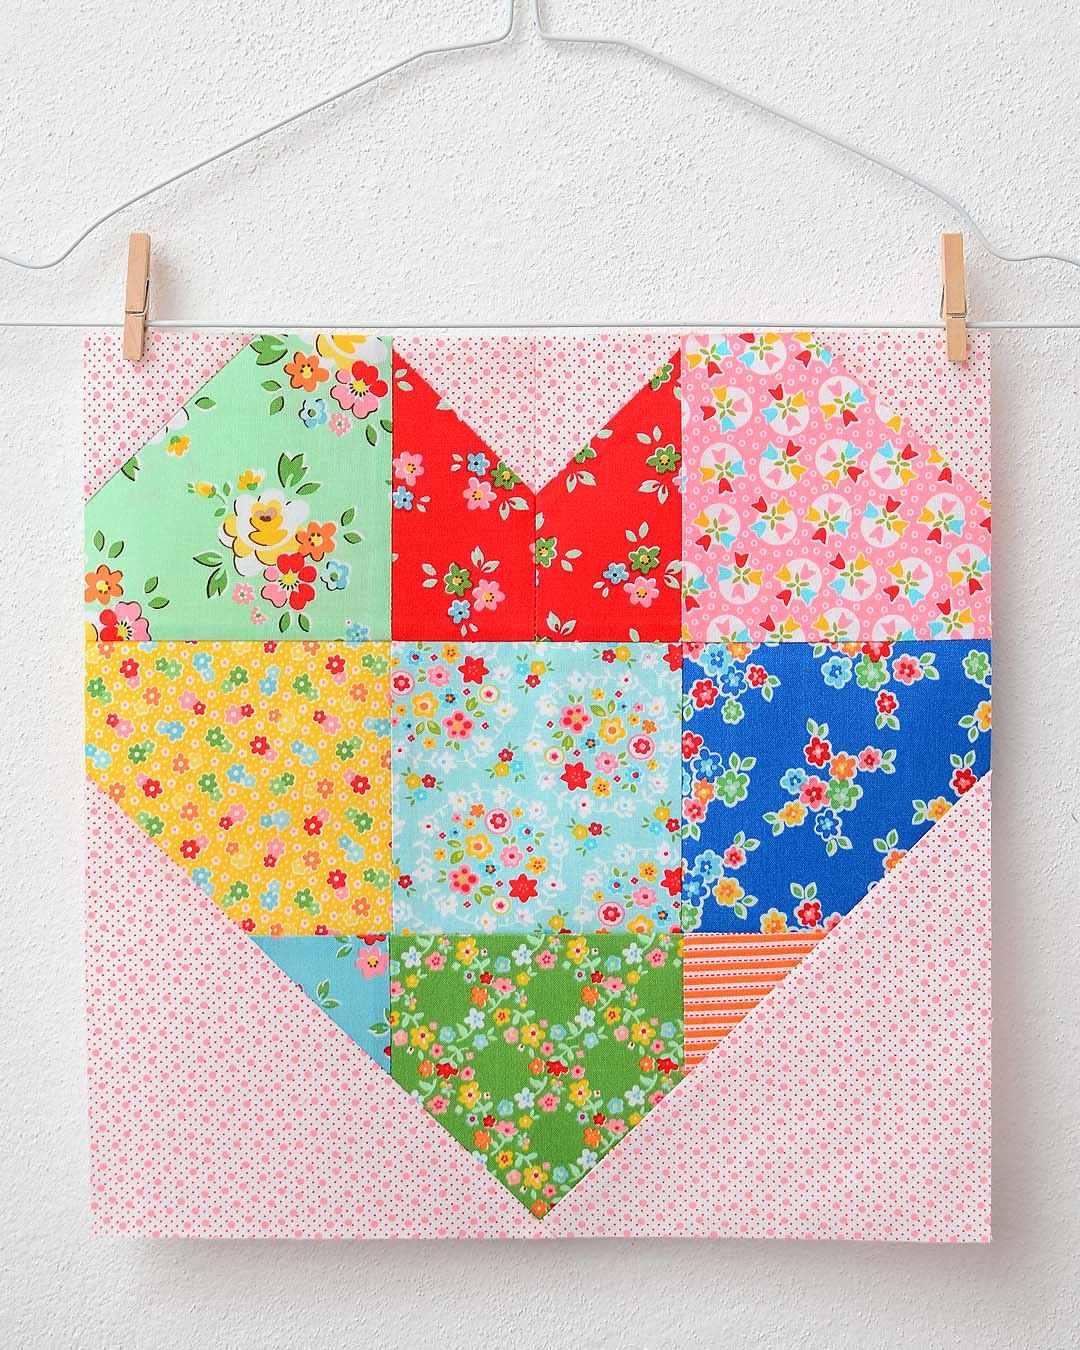 Spelling Bee Sew Along Large Heart Quilt Block by Nadra Ridgeway of ellis & higgs